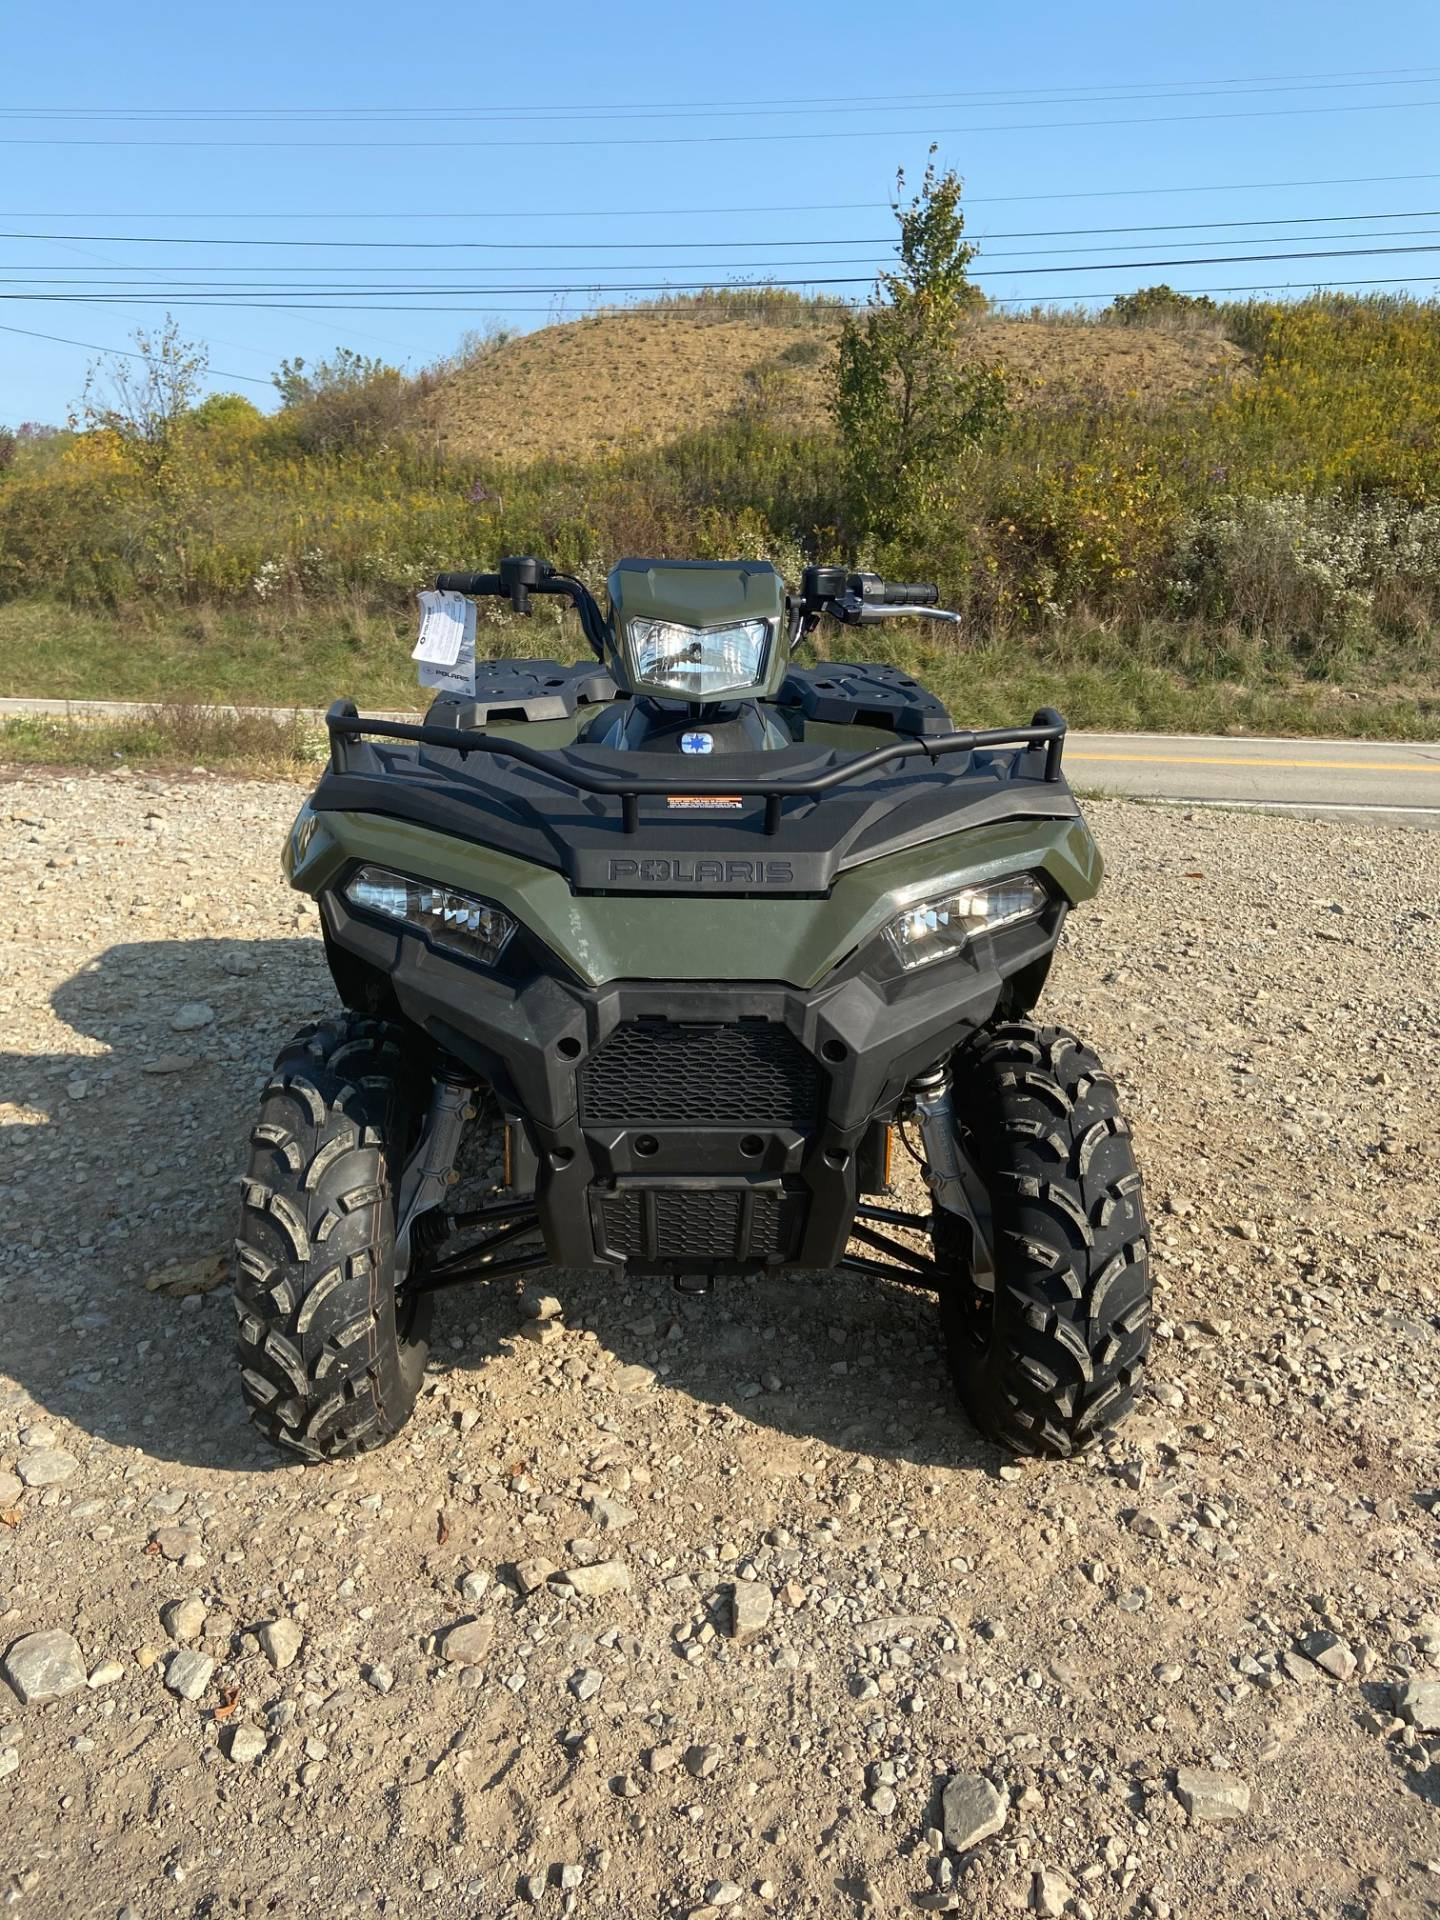 2021 Polaris Sportsman 450 H.O. in Claysville, Pennsylvania - Photo 5